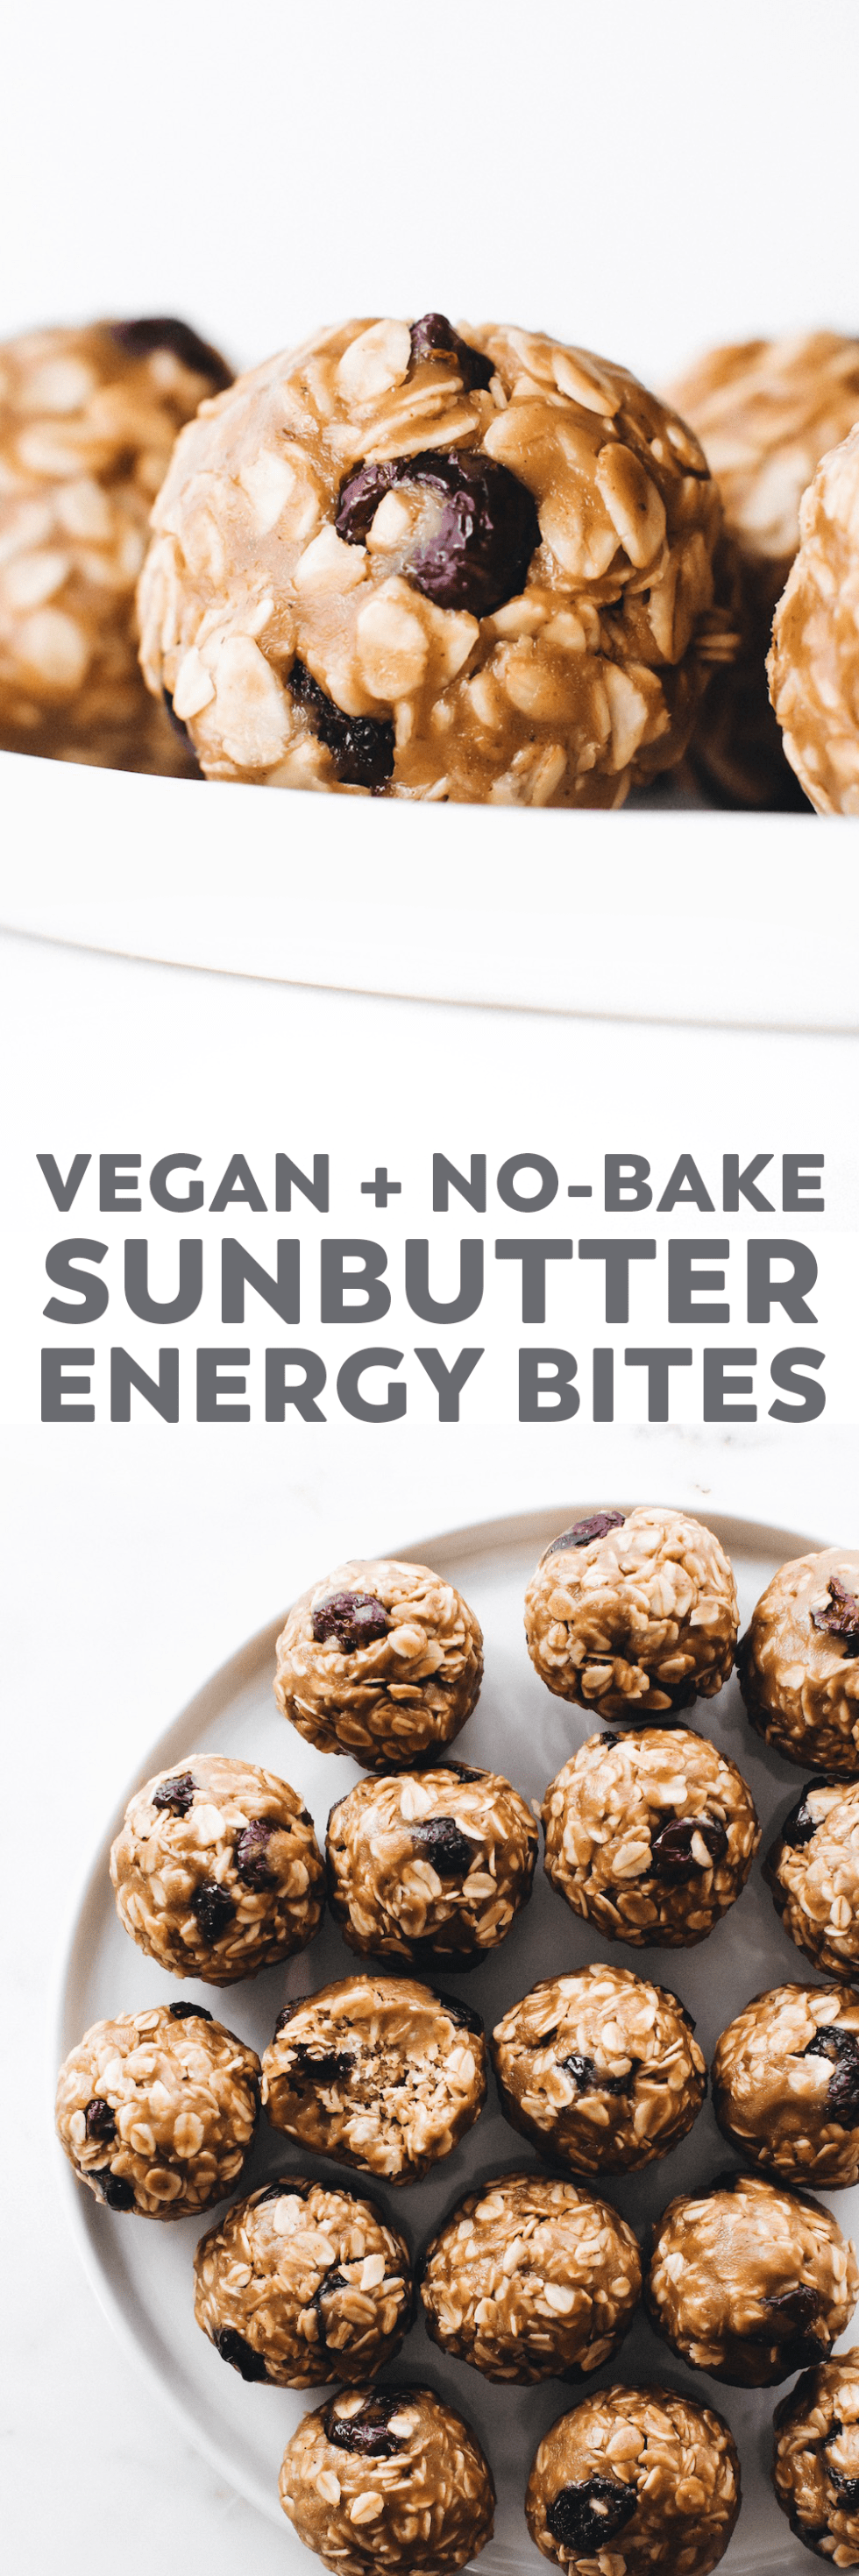 Chewy bite-sized balls made with SunButter, oats, dried fruit, and cinnamon. The perfect  prep-ahead snack that's vegan, gluten-free, and nut-free too! #vegan #glutenfree #snack #easyrecipe #healthyrecipe #nutfree